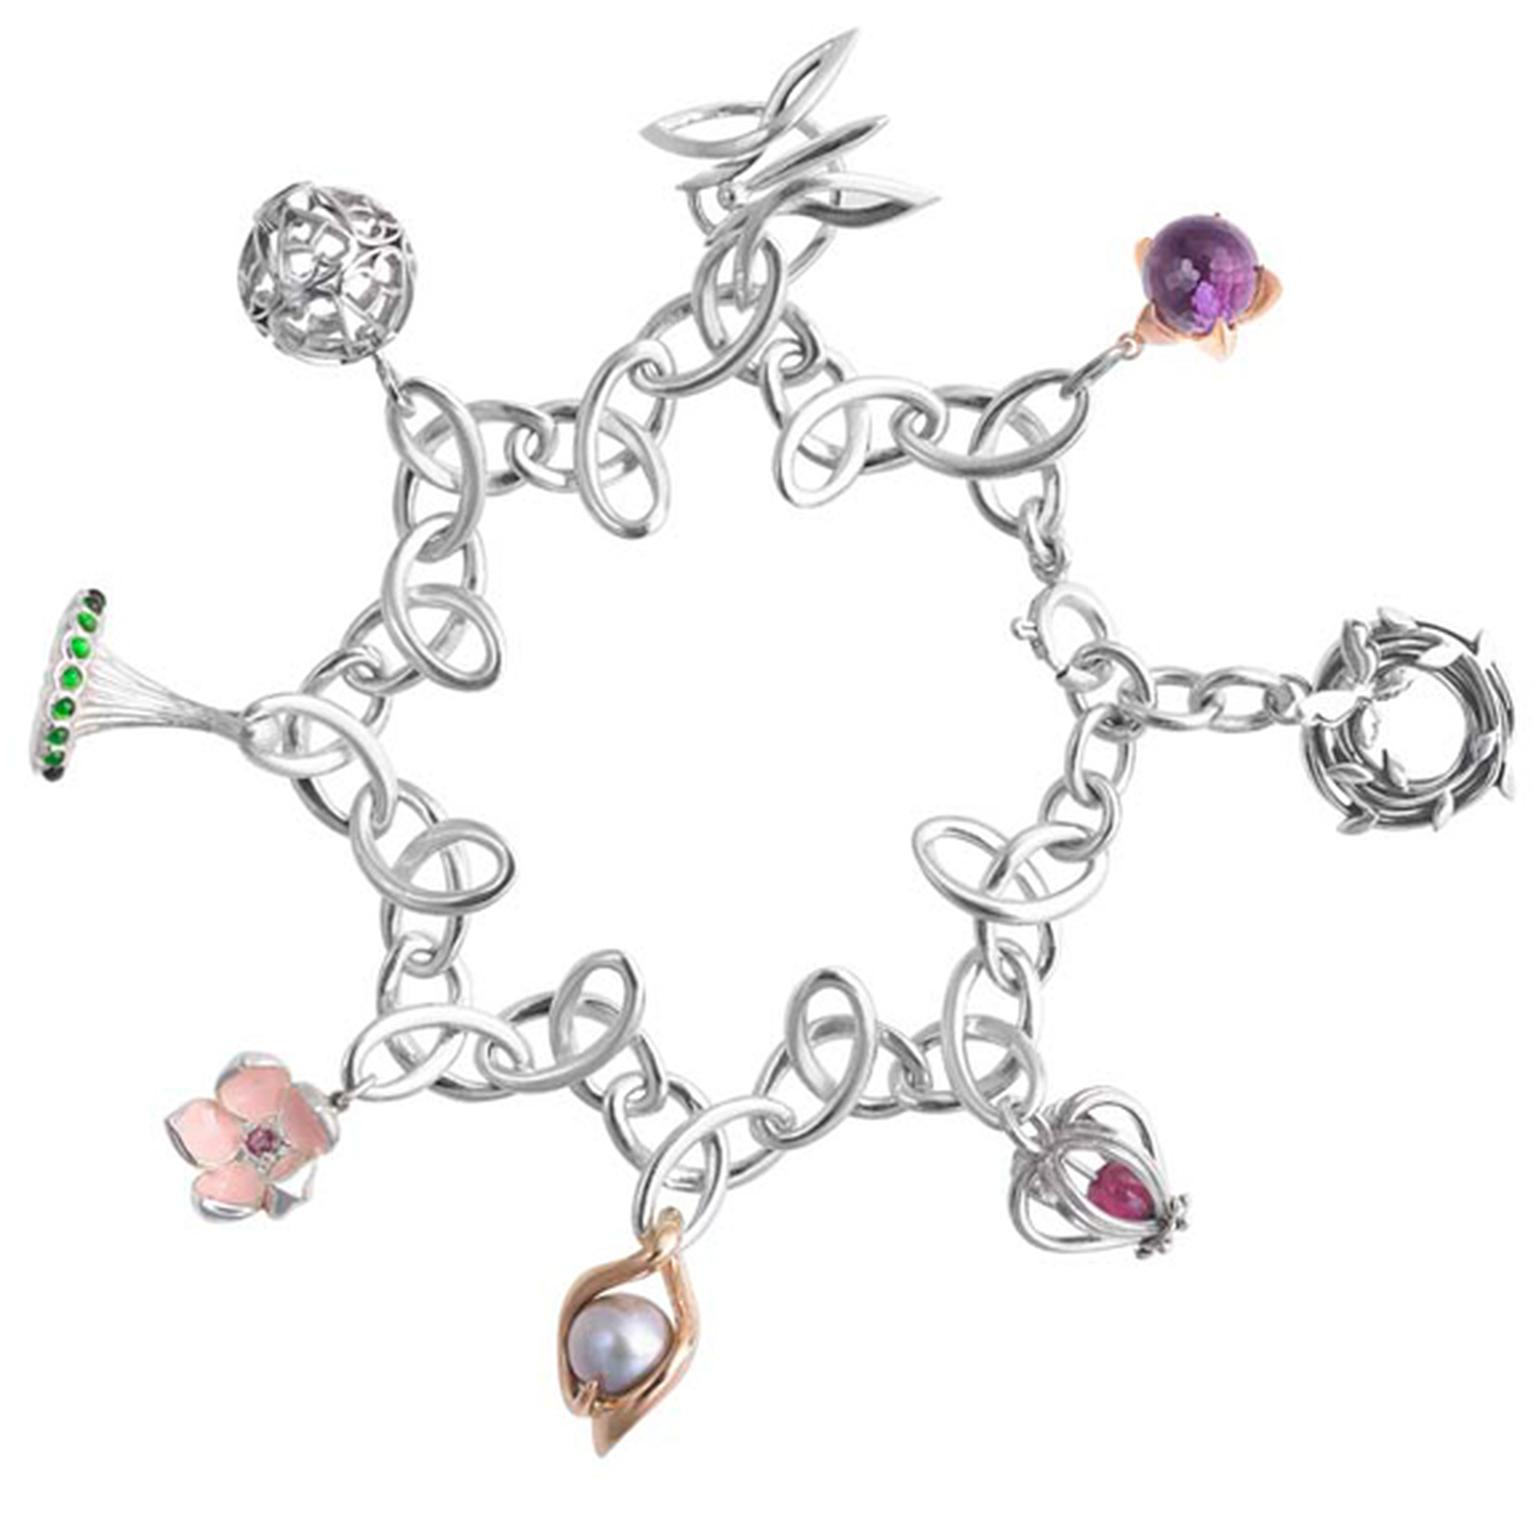 Breast Cancer Bracelet Brand Image